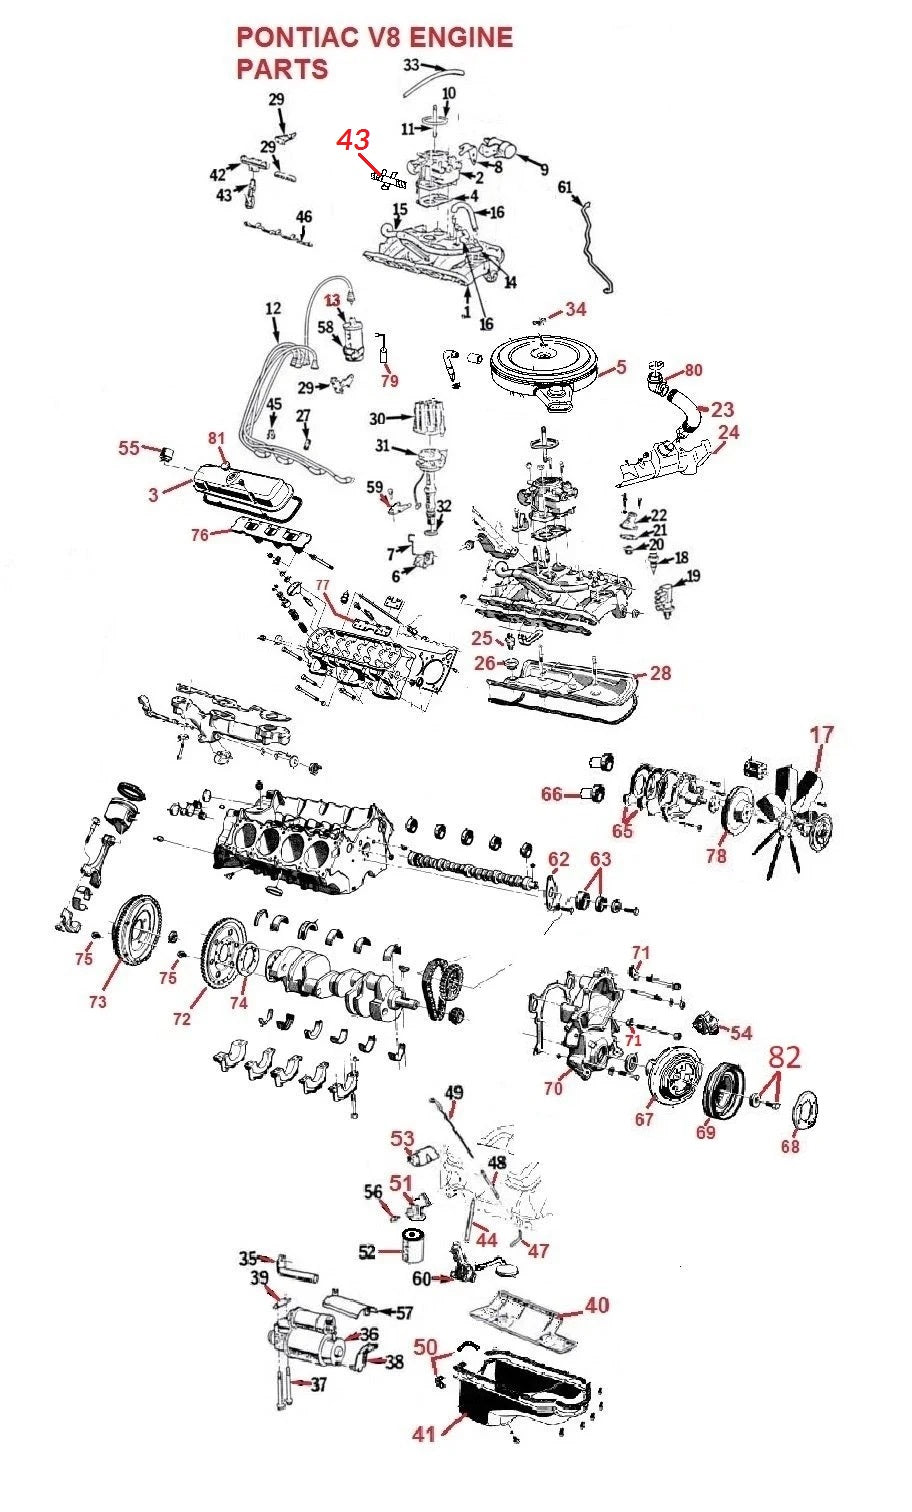 [DIAGRAM] Wiring Diagram 1980 Pontiac Firebird FULL